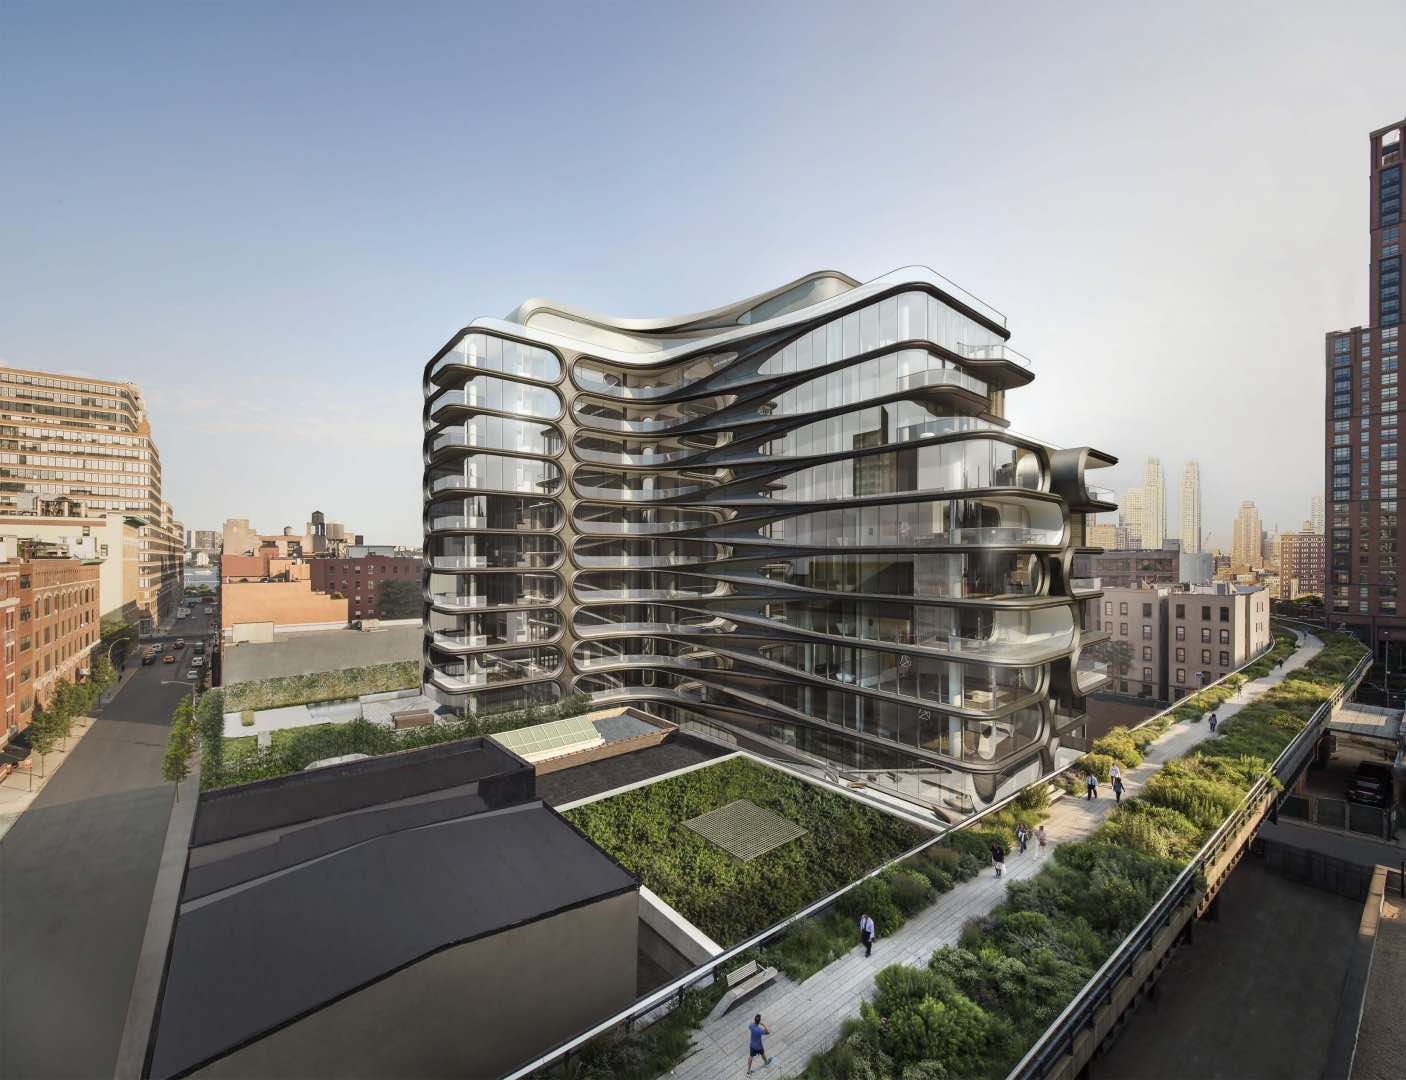 520 west 28th street zaha hadid architecture